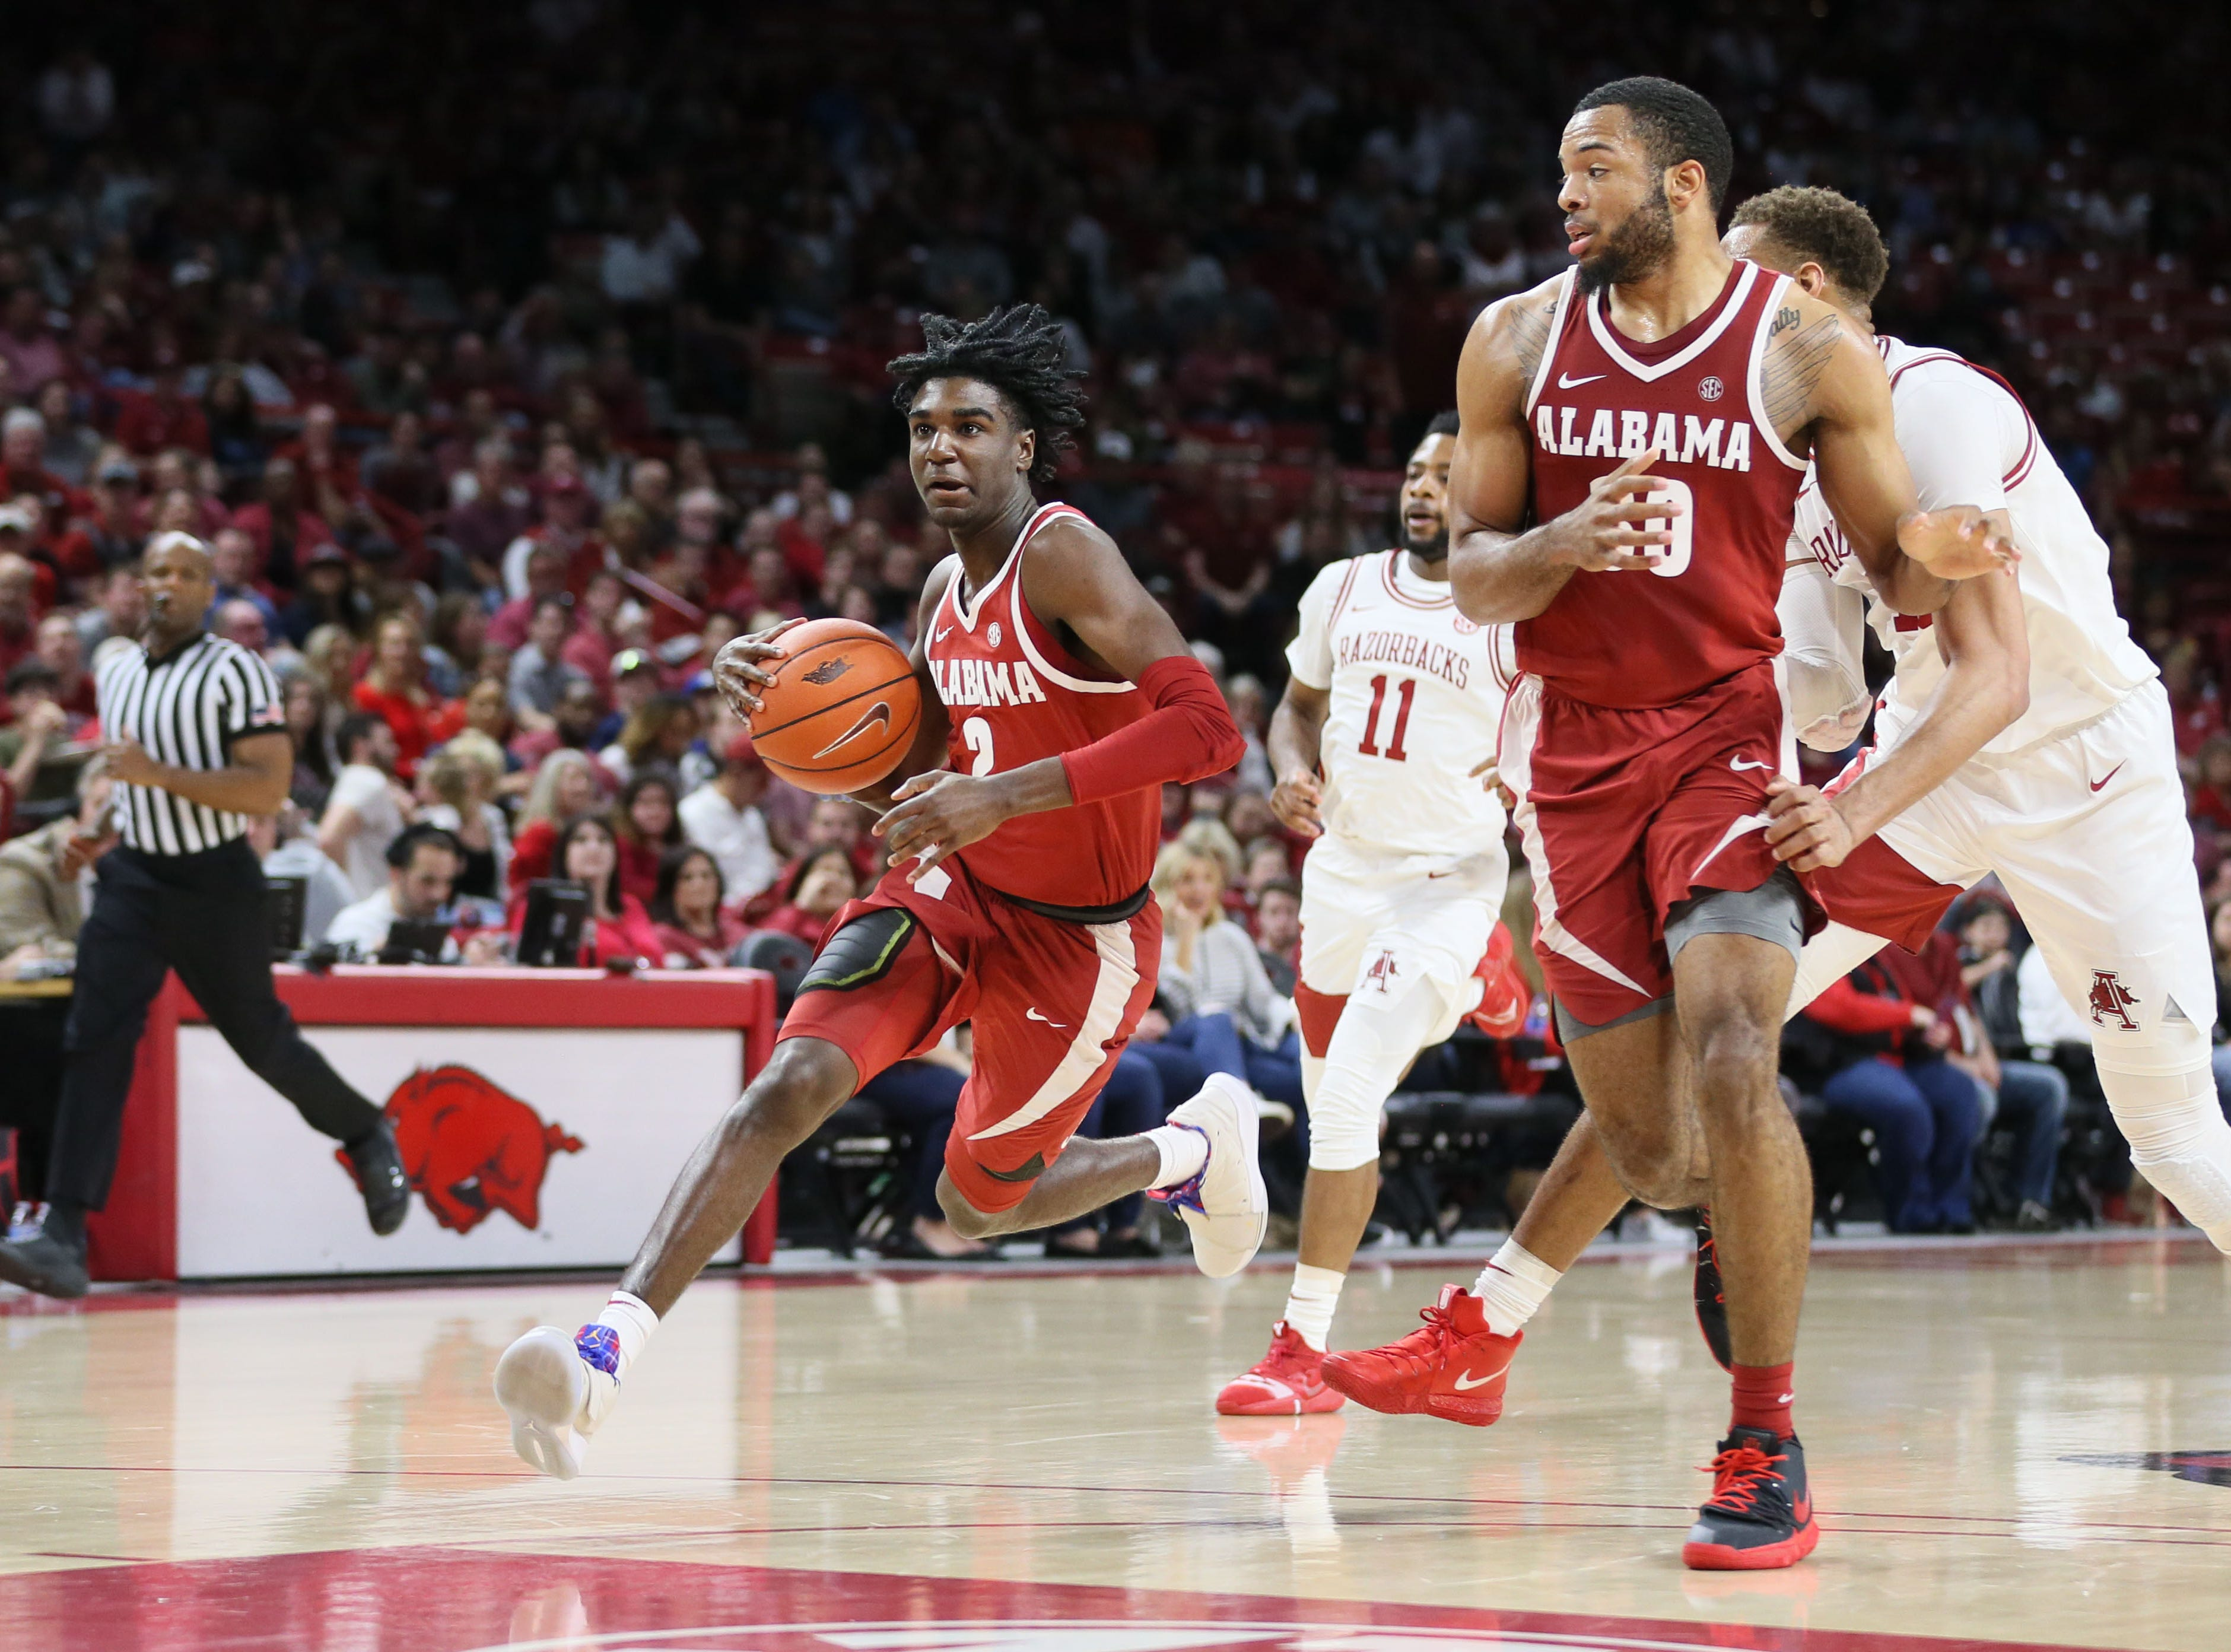 Mar 9, 2019; Fayetteville, AR, USA; Alabama Crimson Tide guard Kira Lewis Jr (2) drives to the basket as forward Galin Smith (30) screens during the first half against the Arkansas Razorbacks at Bud Walton Arena. Mandatory Credit: Nelson Chenault-USA TODAY Sports